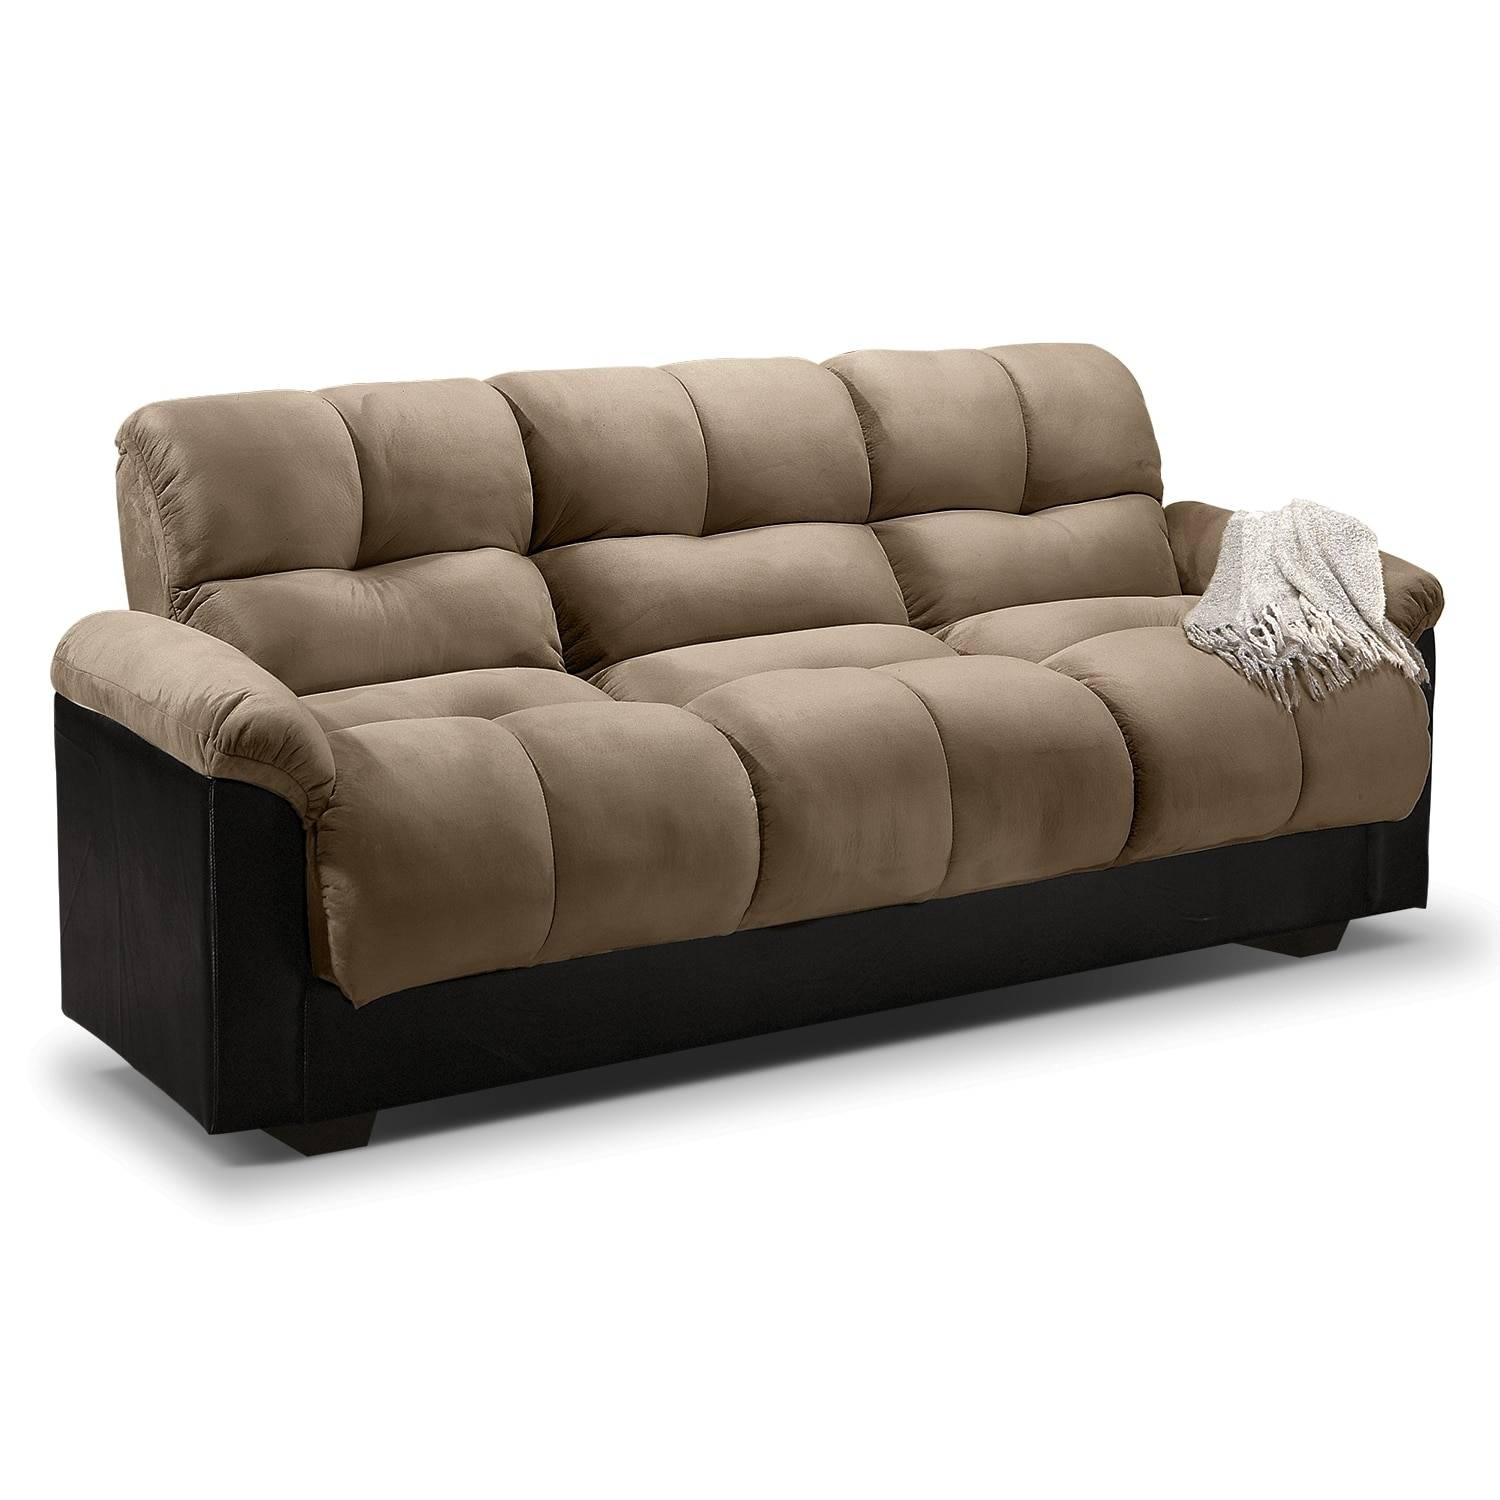 Futons | Living Room Seating | Value City Furniture with Leather Sofa Beds With Storage (Image 16 of 30)